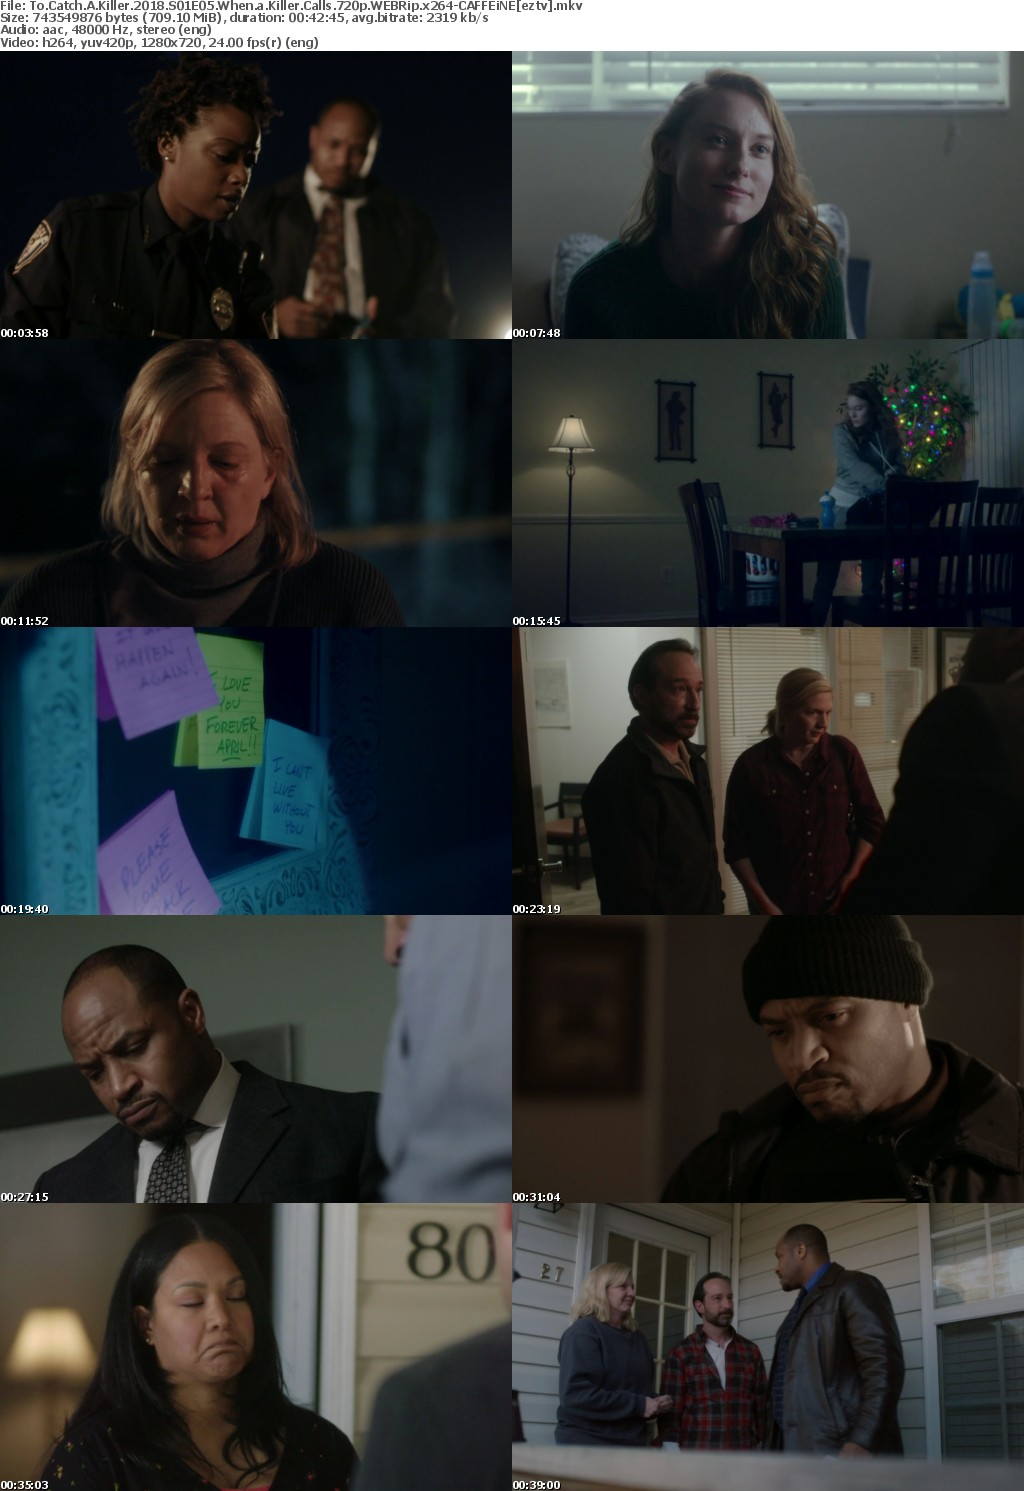 To Catch A Killer 2018 S01E05 When a Killer Calls 720p WEBRip x264-CAFFEiNE